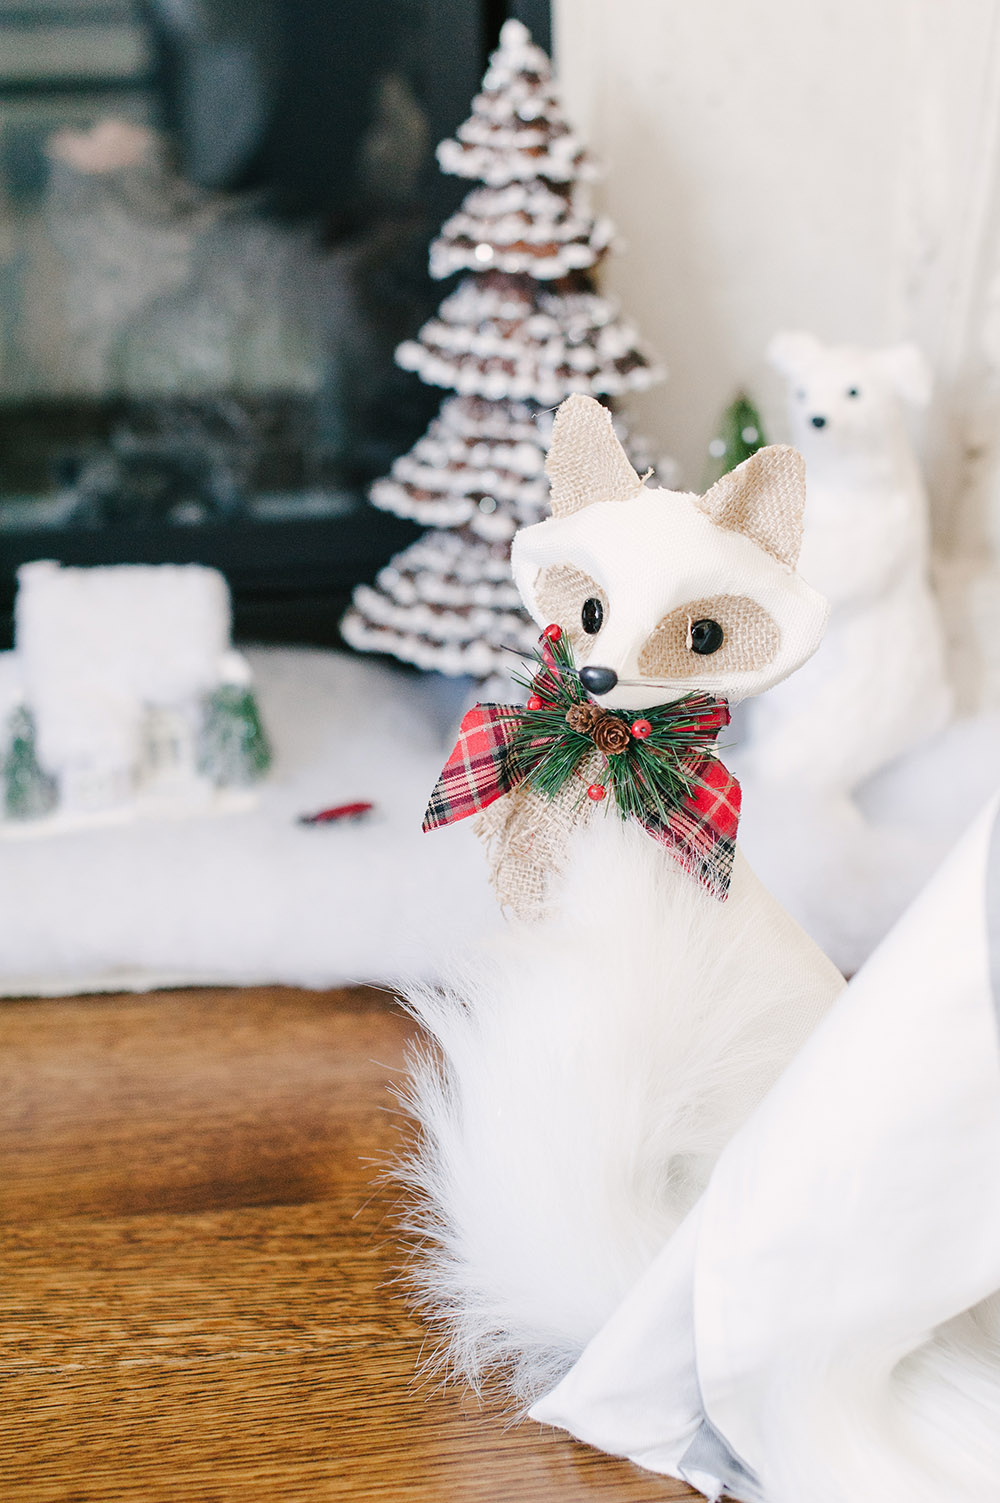 Winter Decor, Decor House Tour, Winter Decor, Christmas Decor, Decor Veronneau, Holiday Tour for Christmas